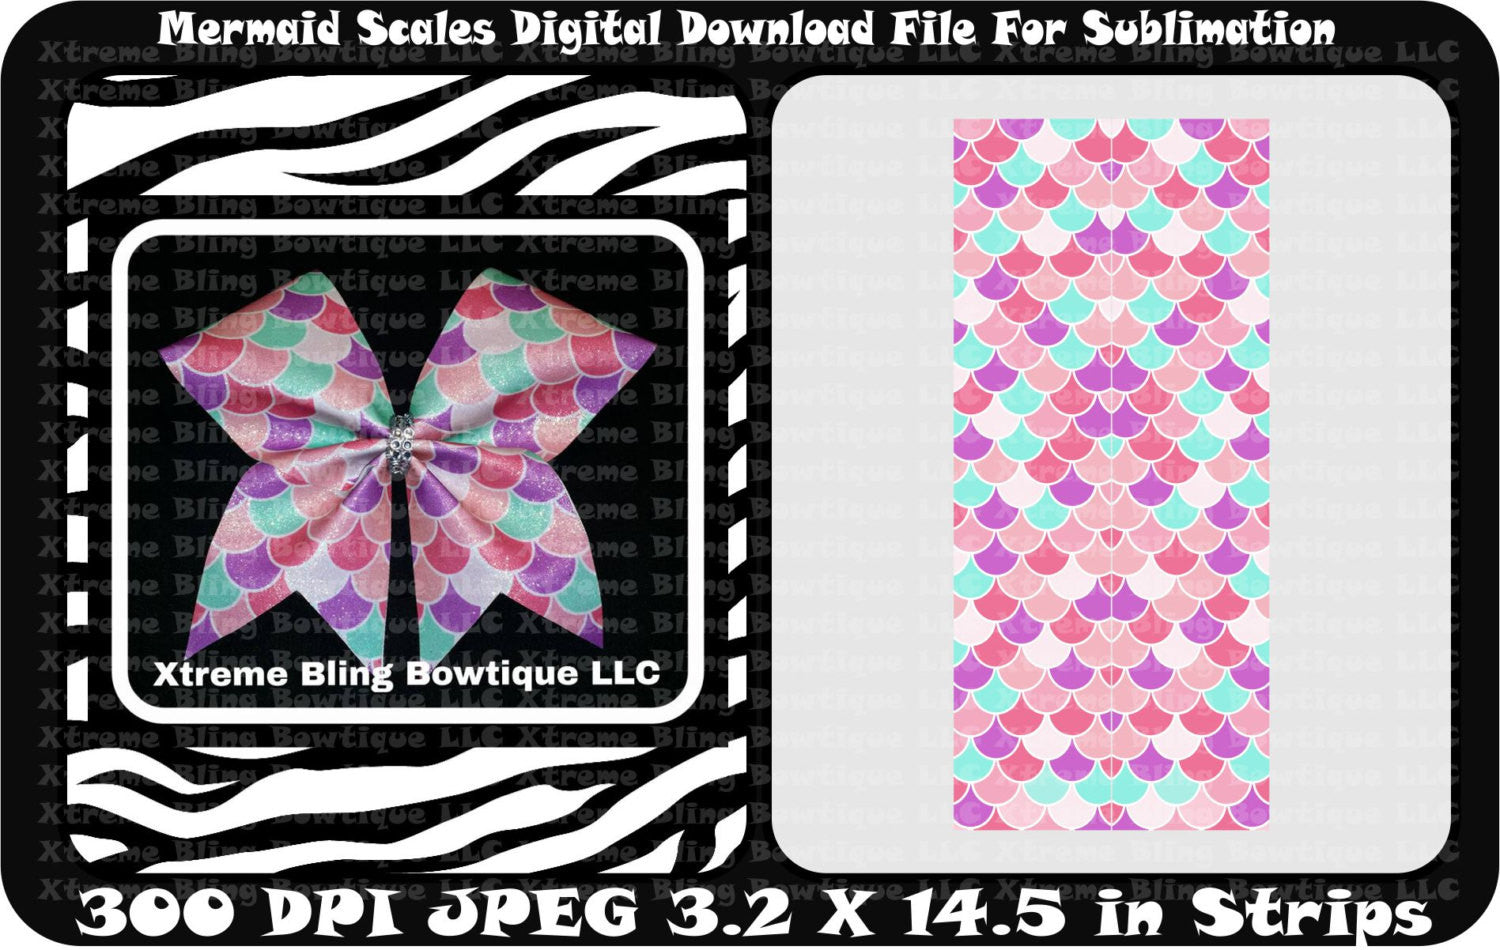 Mermaid Scallops Sublimation Cheer Bow Strips Download